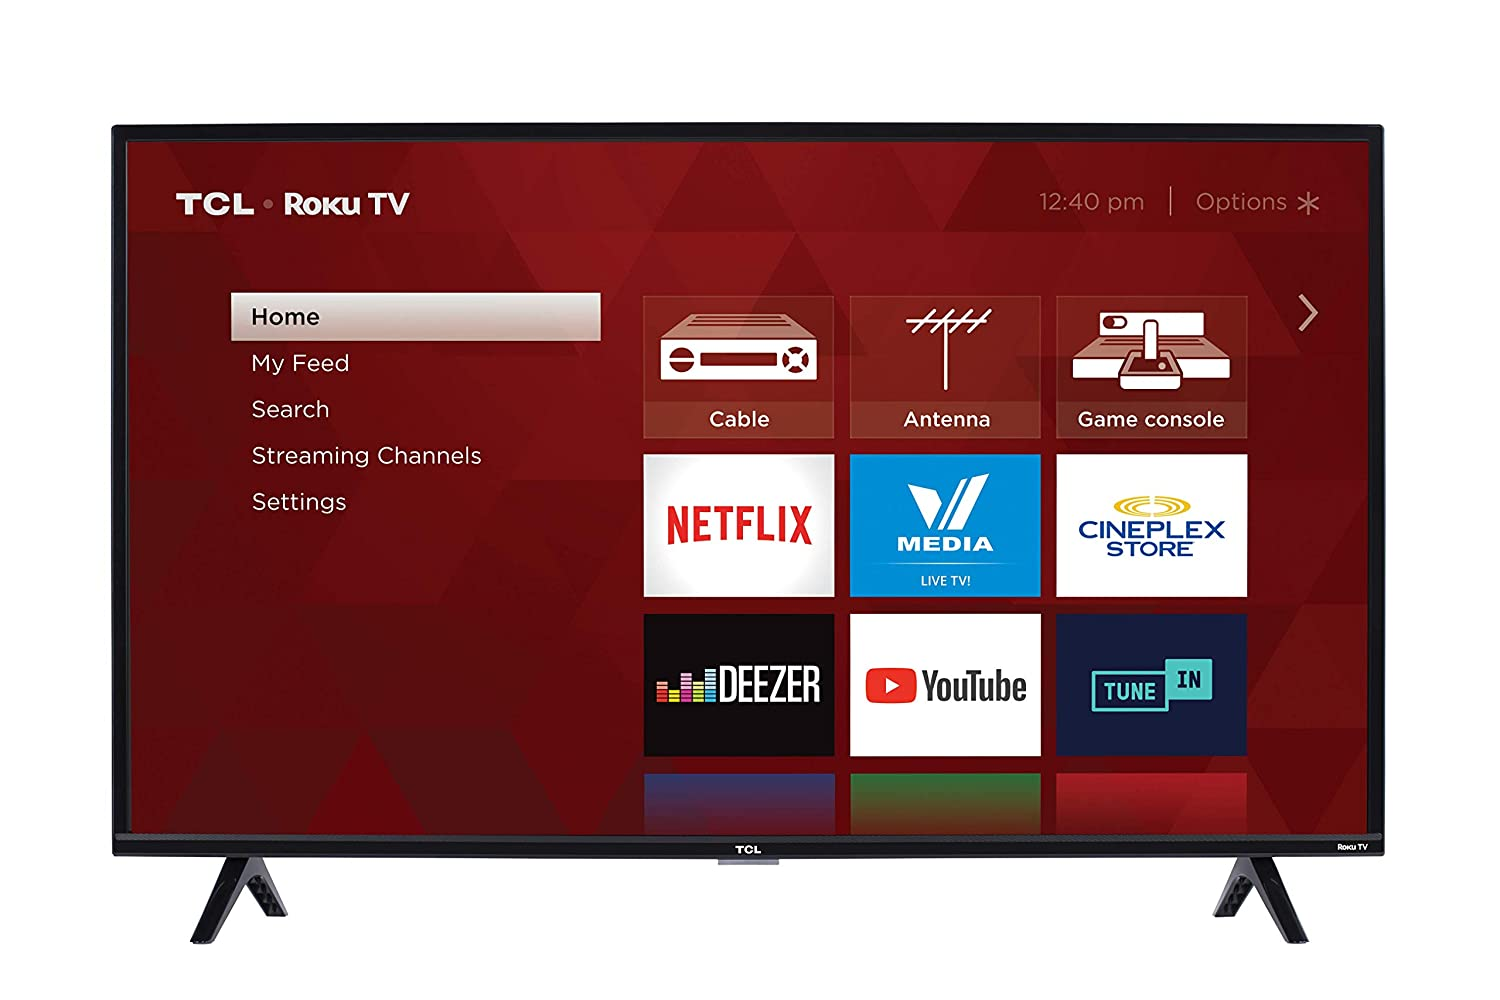 TCL 40S325-CA 1080p Smart LED Television (2019), 40' 40 TCL - Direct Import